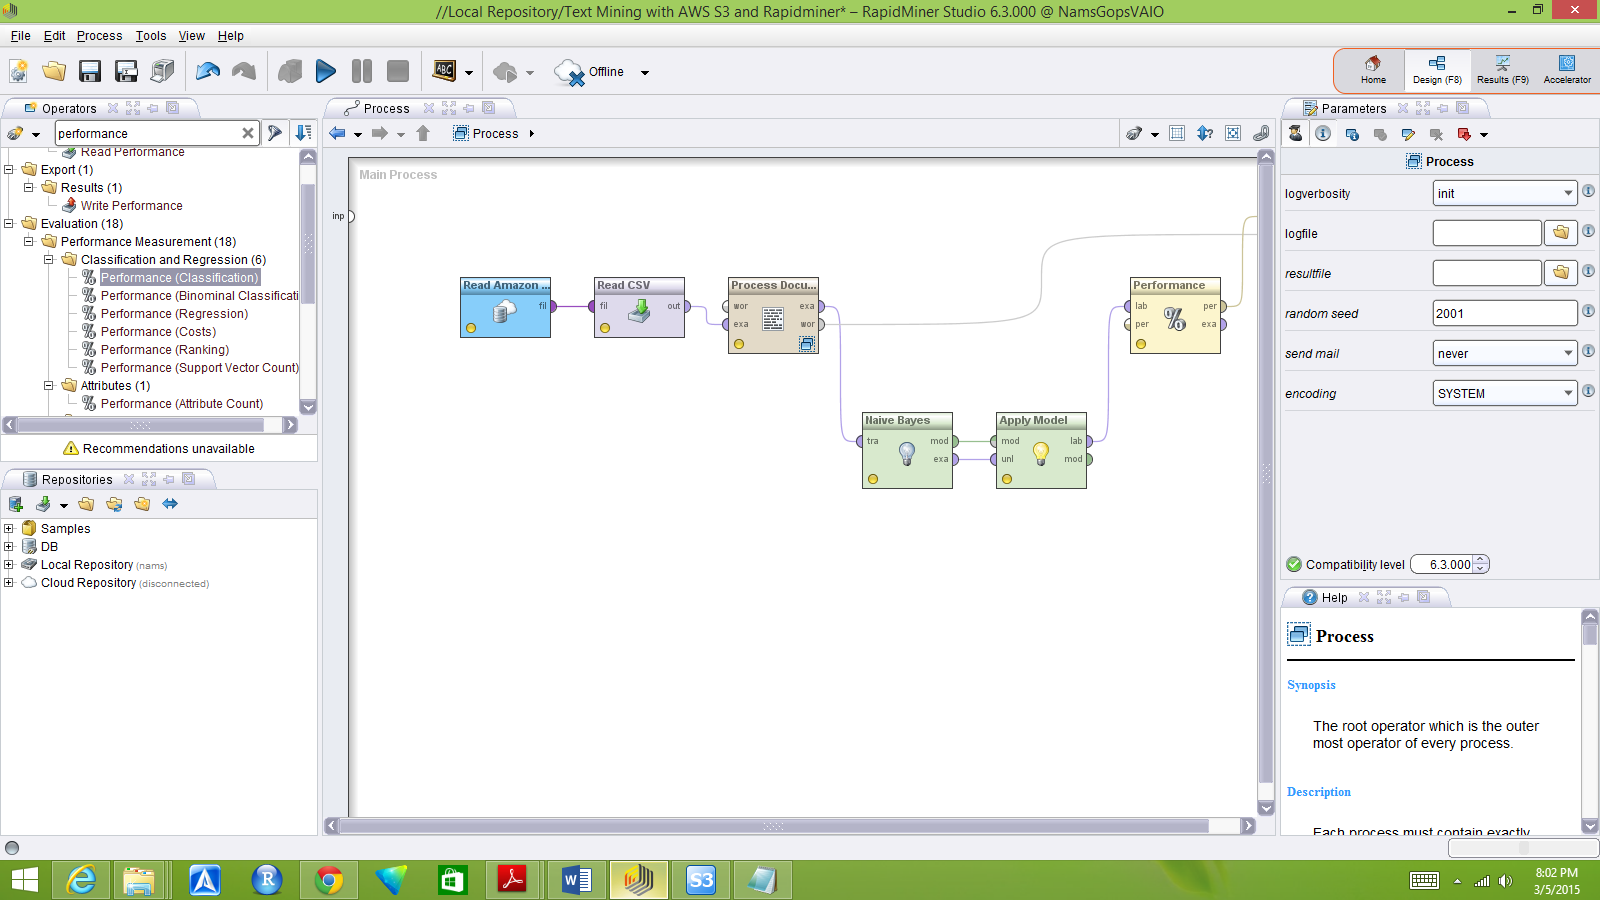 Using RapidMiner to create a text mining workflow integrated with S3